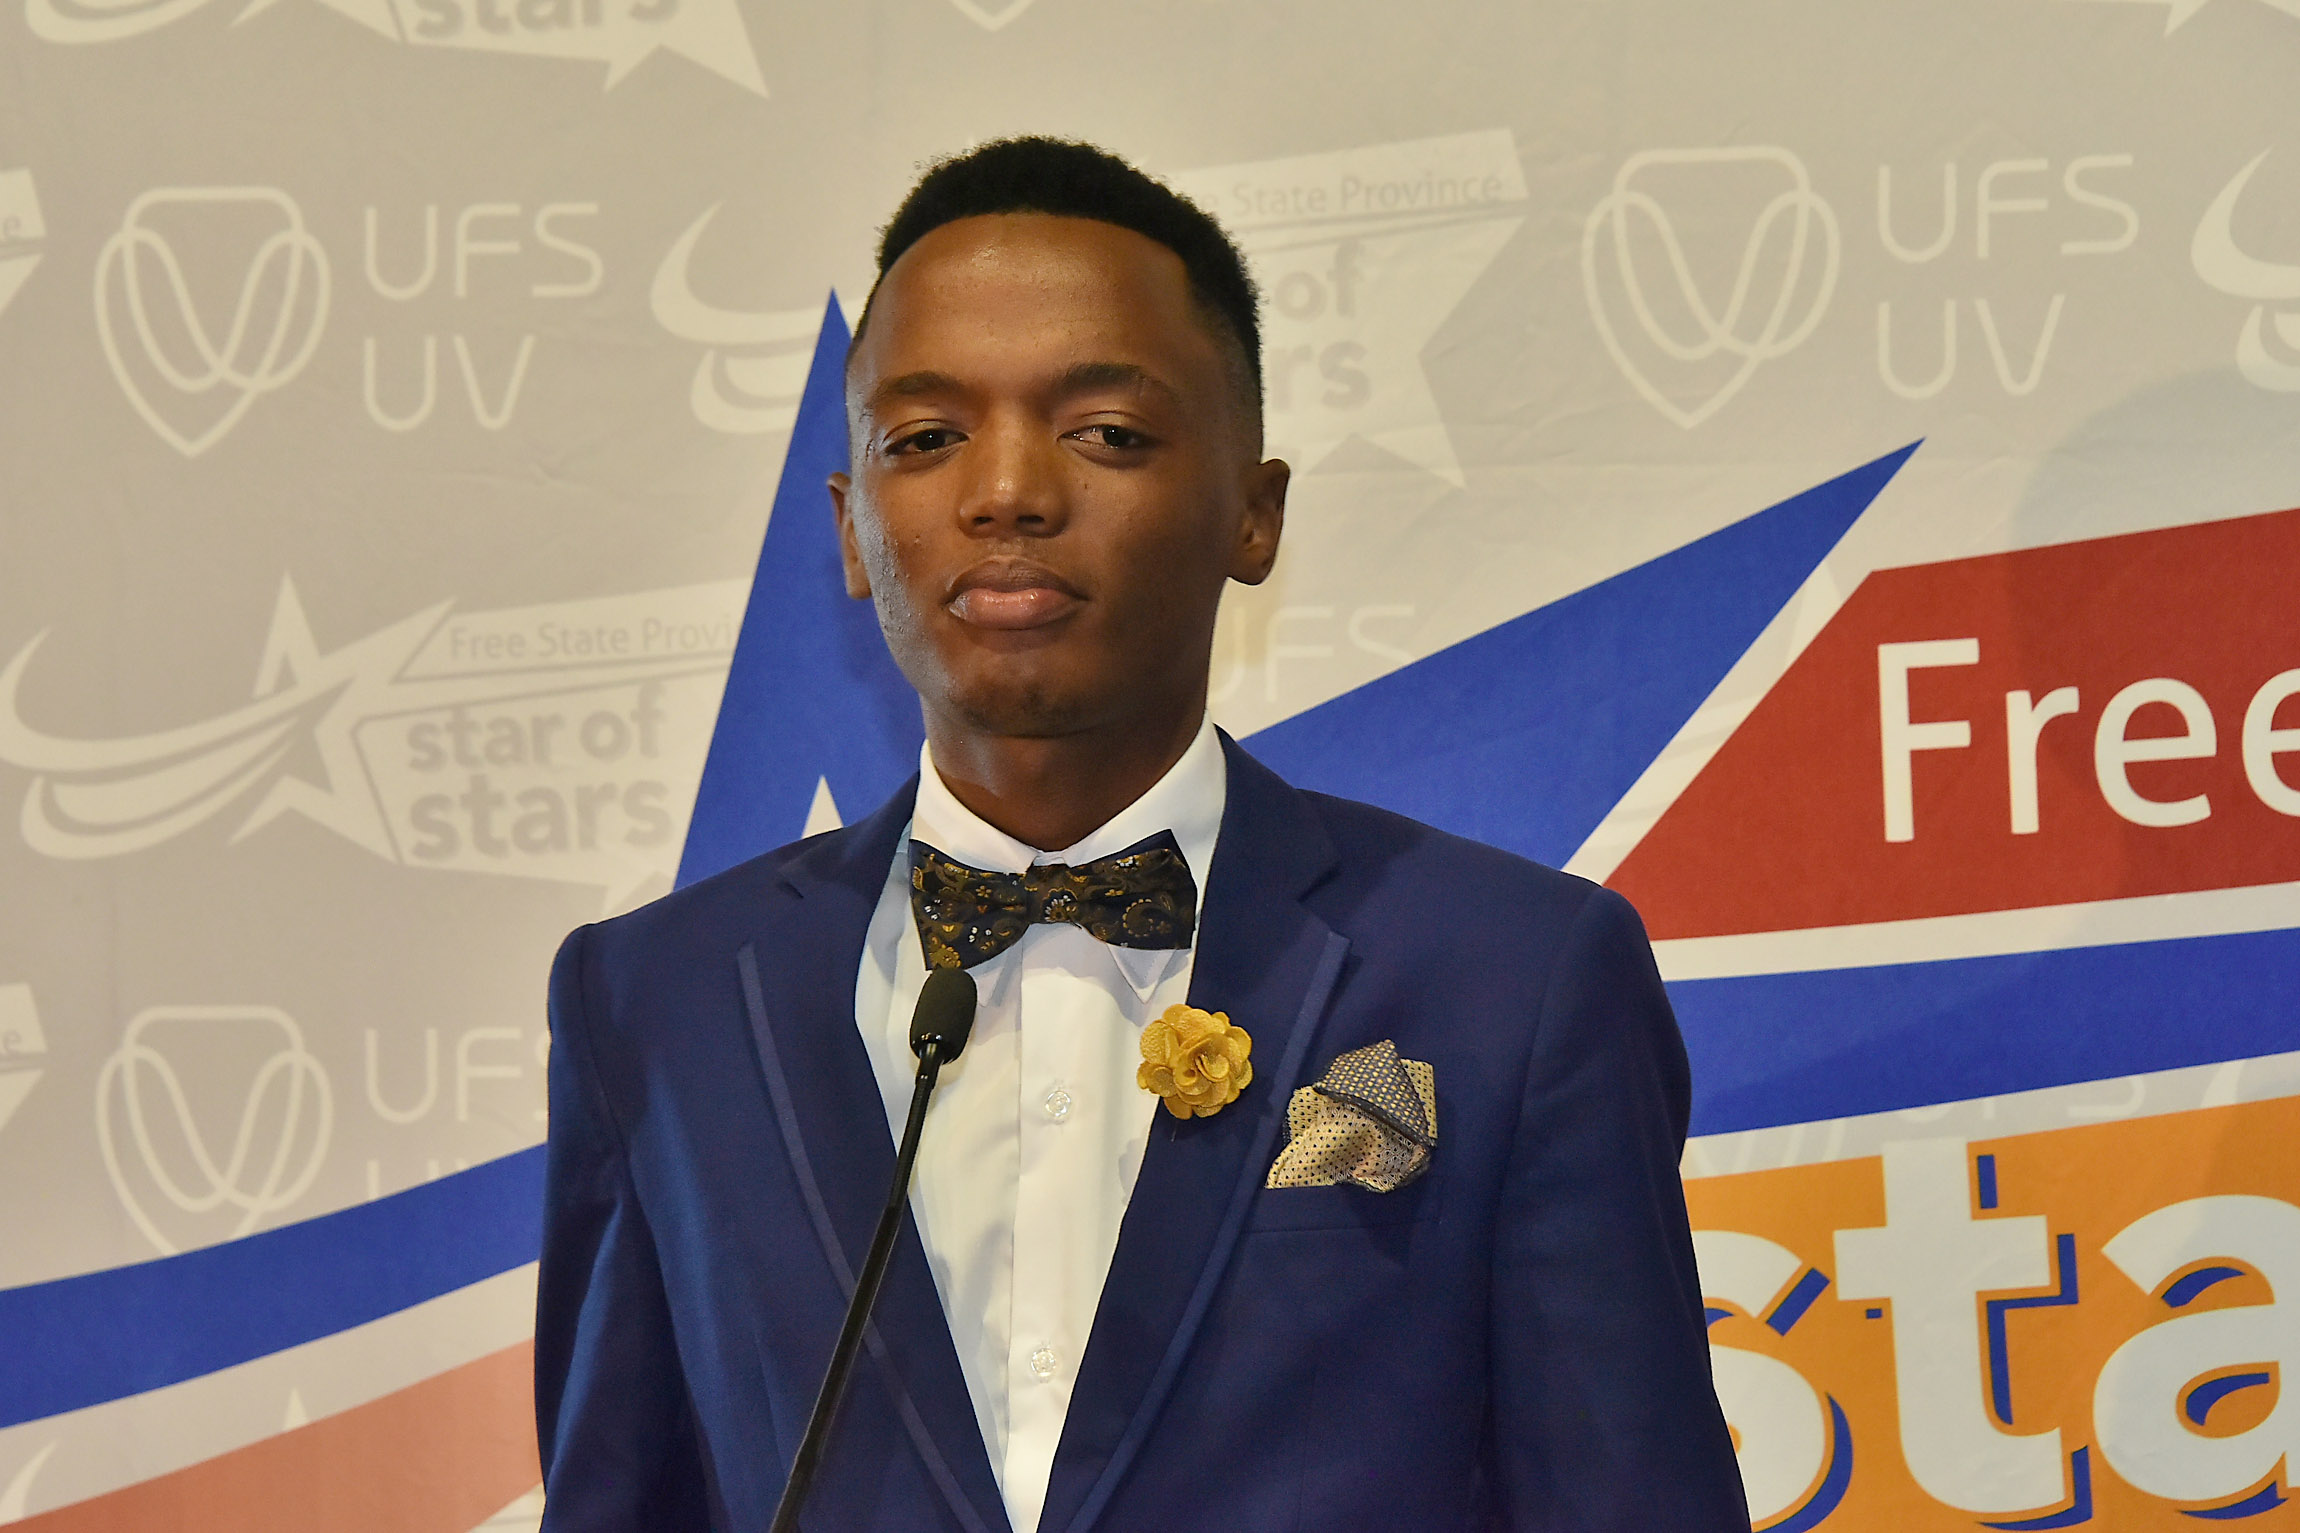 Kamohelo Mphuthi, Winner of the Star of Stars competition